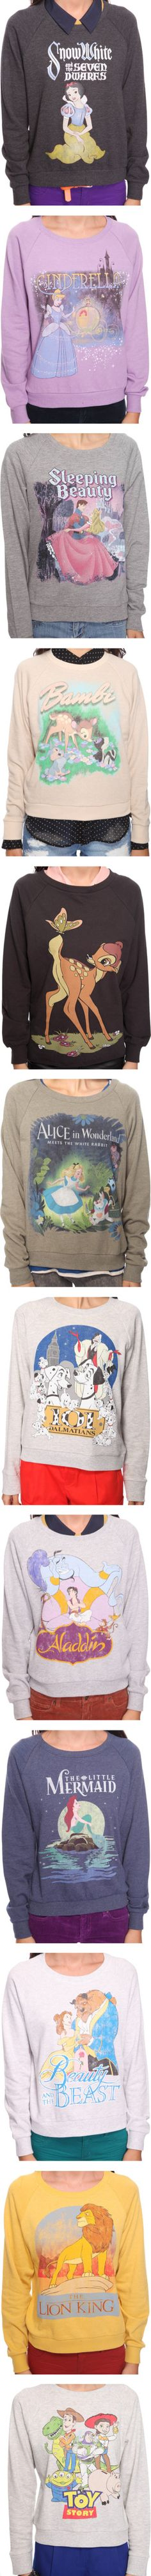 """Forever 21 Disney Sweatshirts"" by scarscar93 ❤ liked on Polyvore"